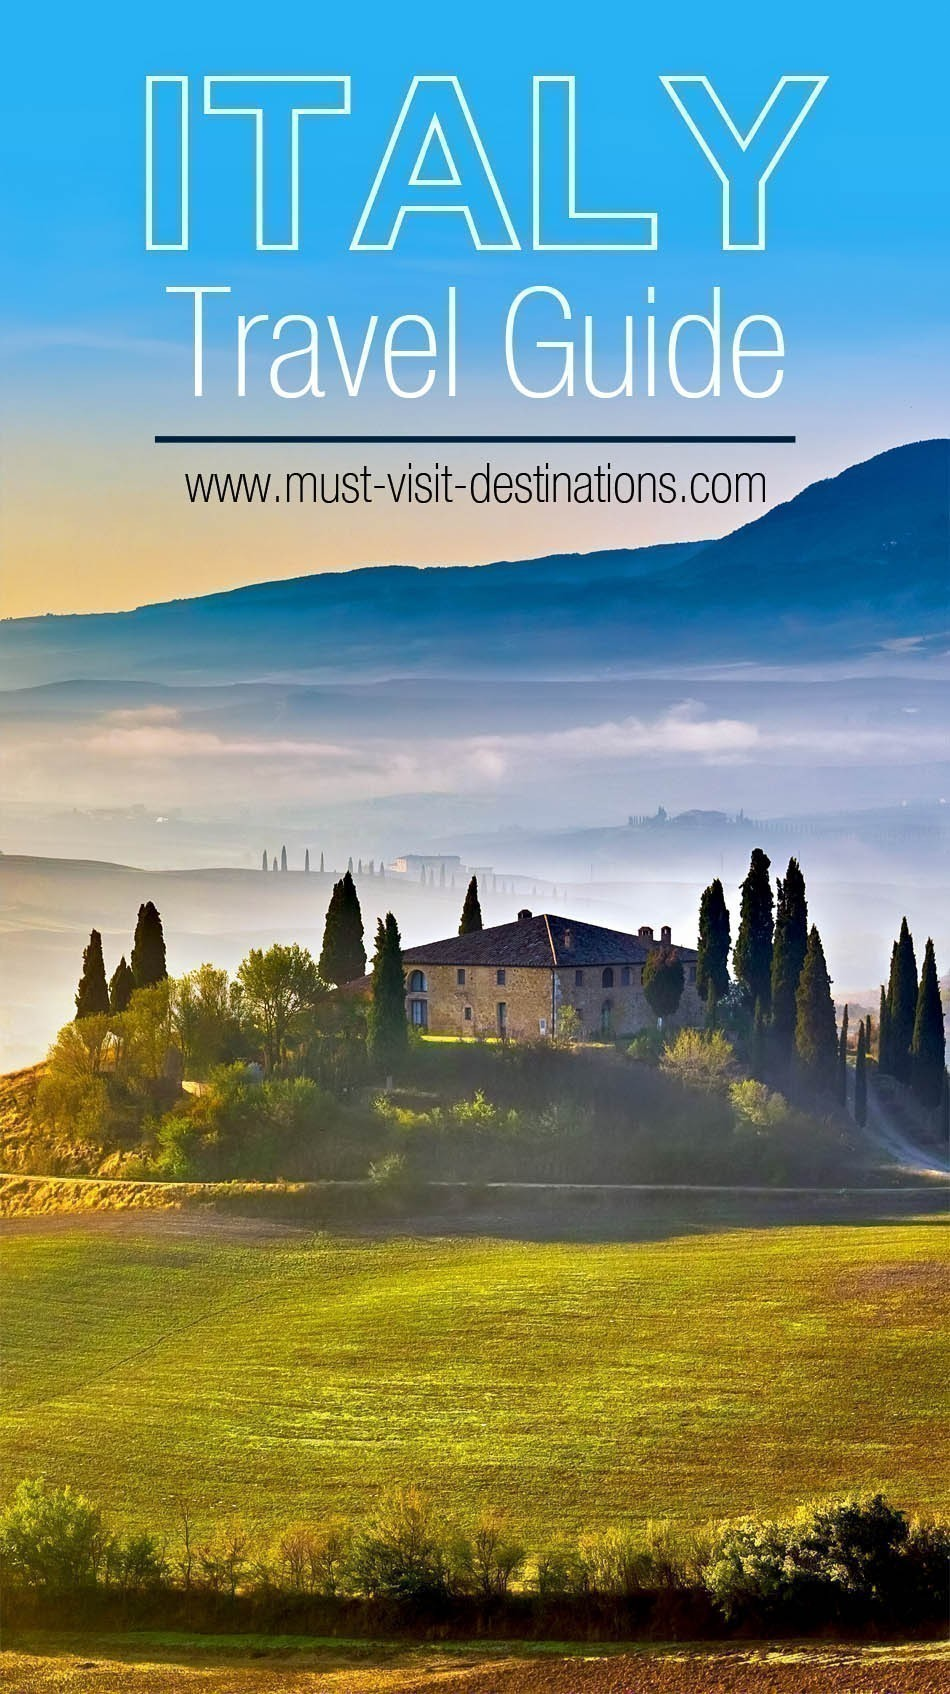 Italy Travel Guide #italy #travel #guide